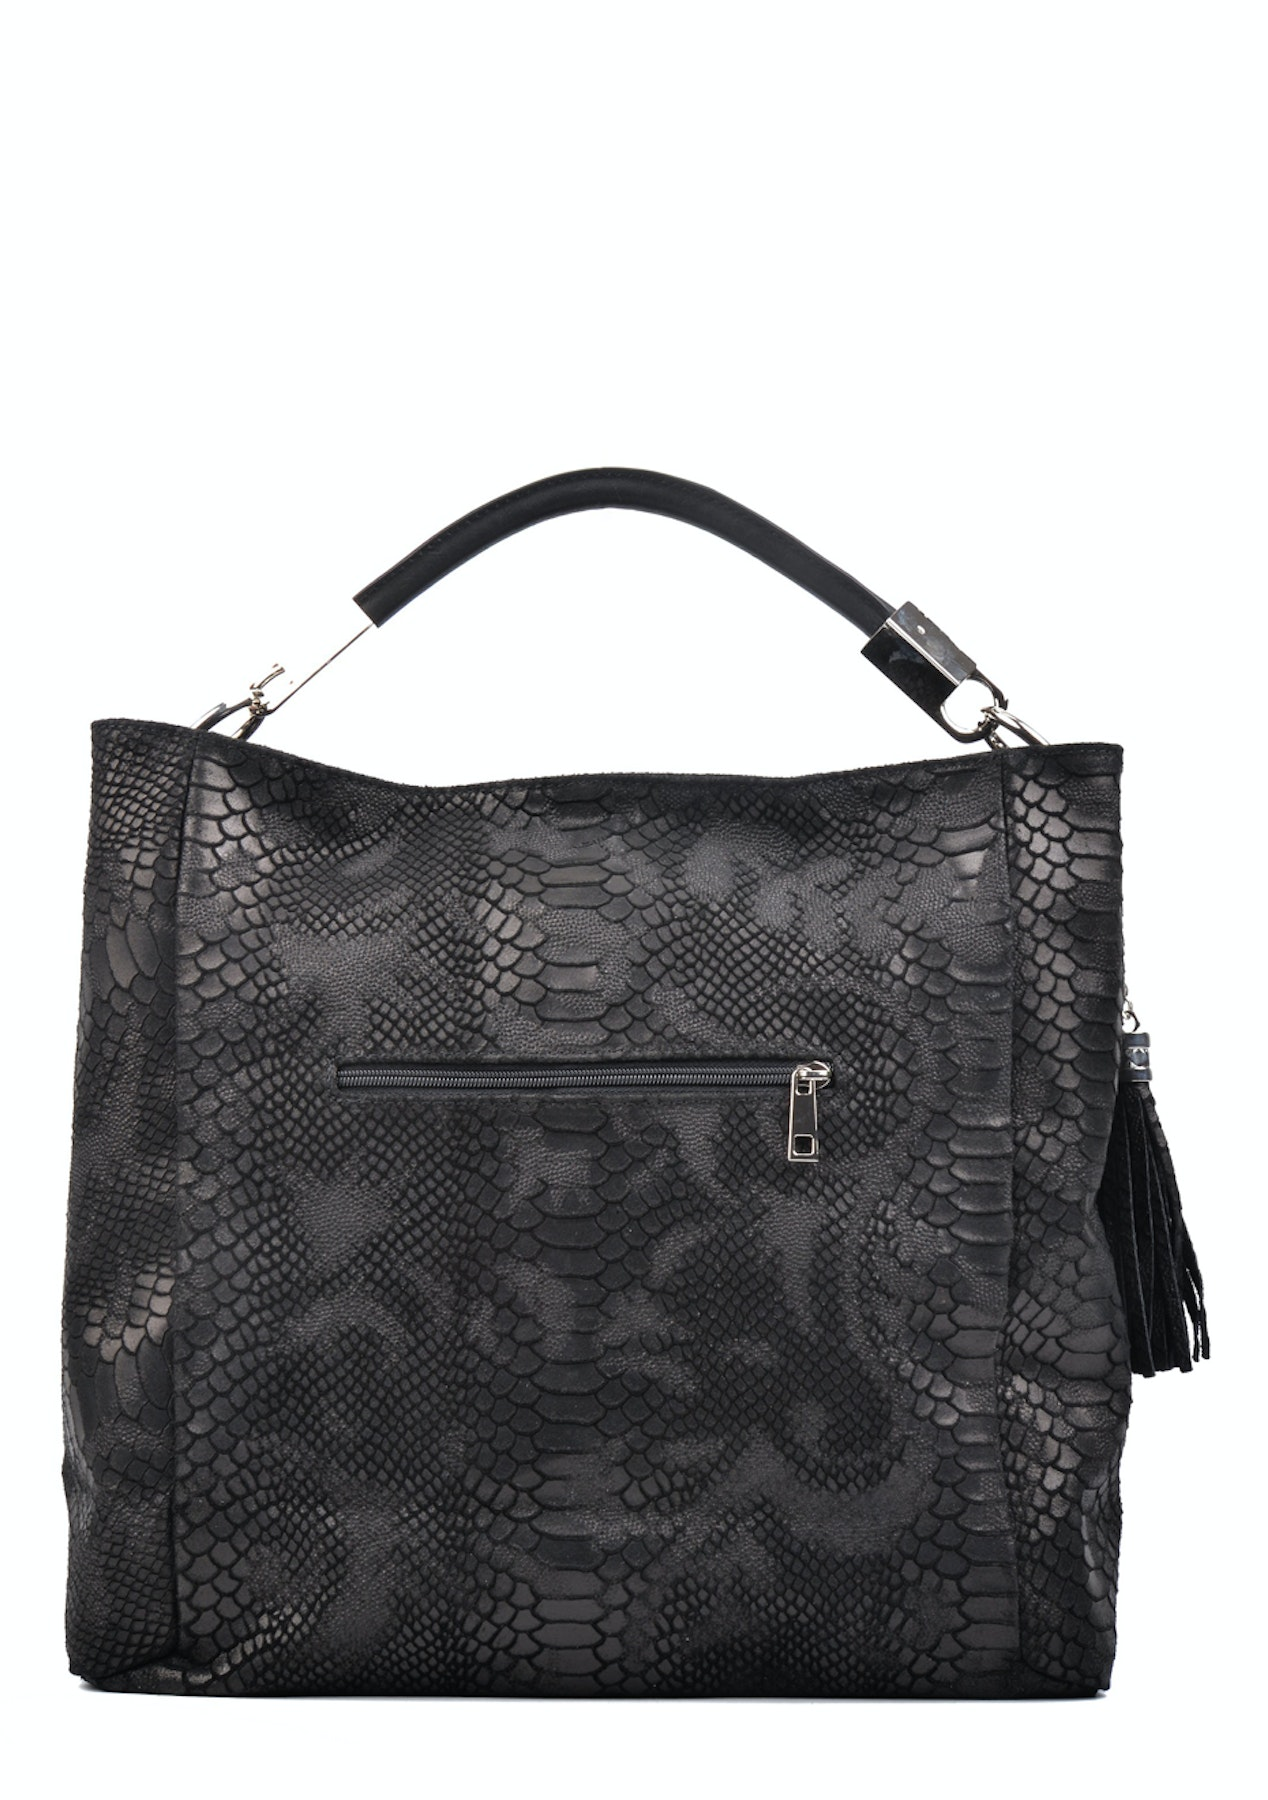 2a099c7db2 Carla Ferreri - Hobo Bag - Nero - Monochrome Leather bags up to 74% off -  Onceit